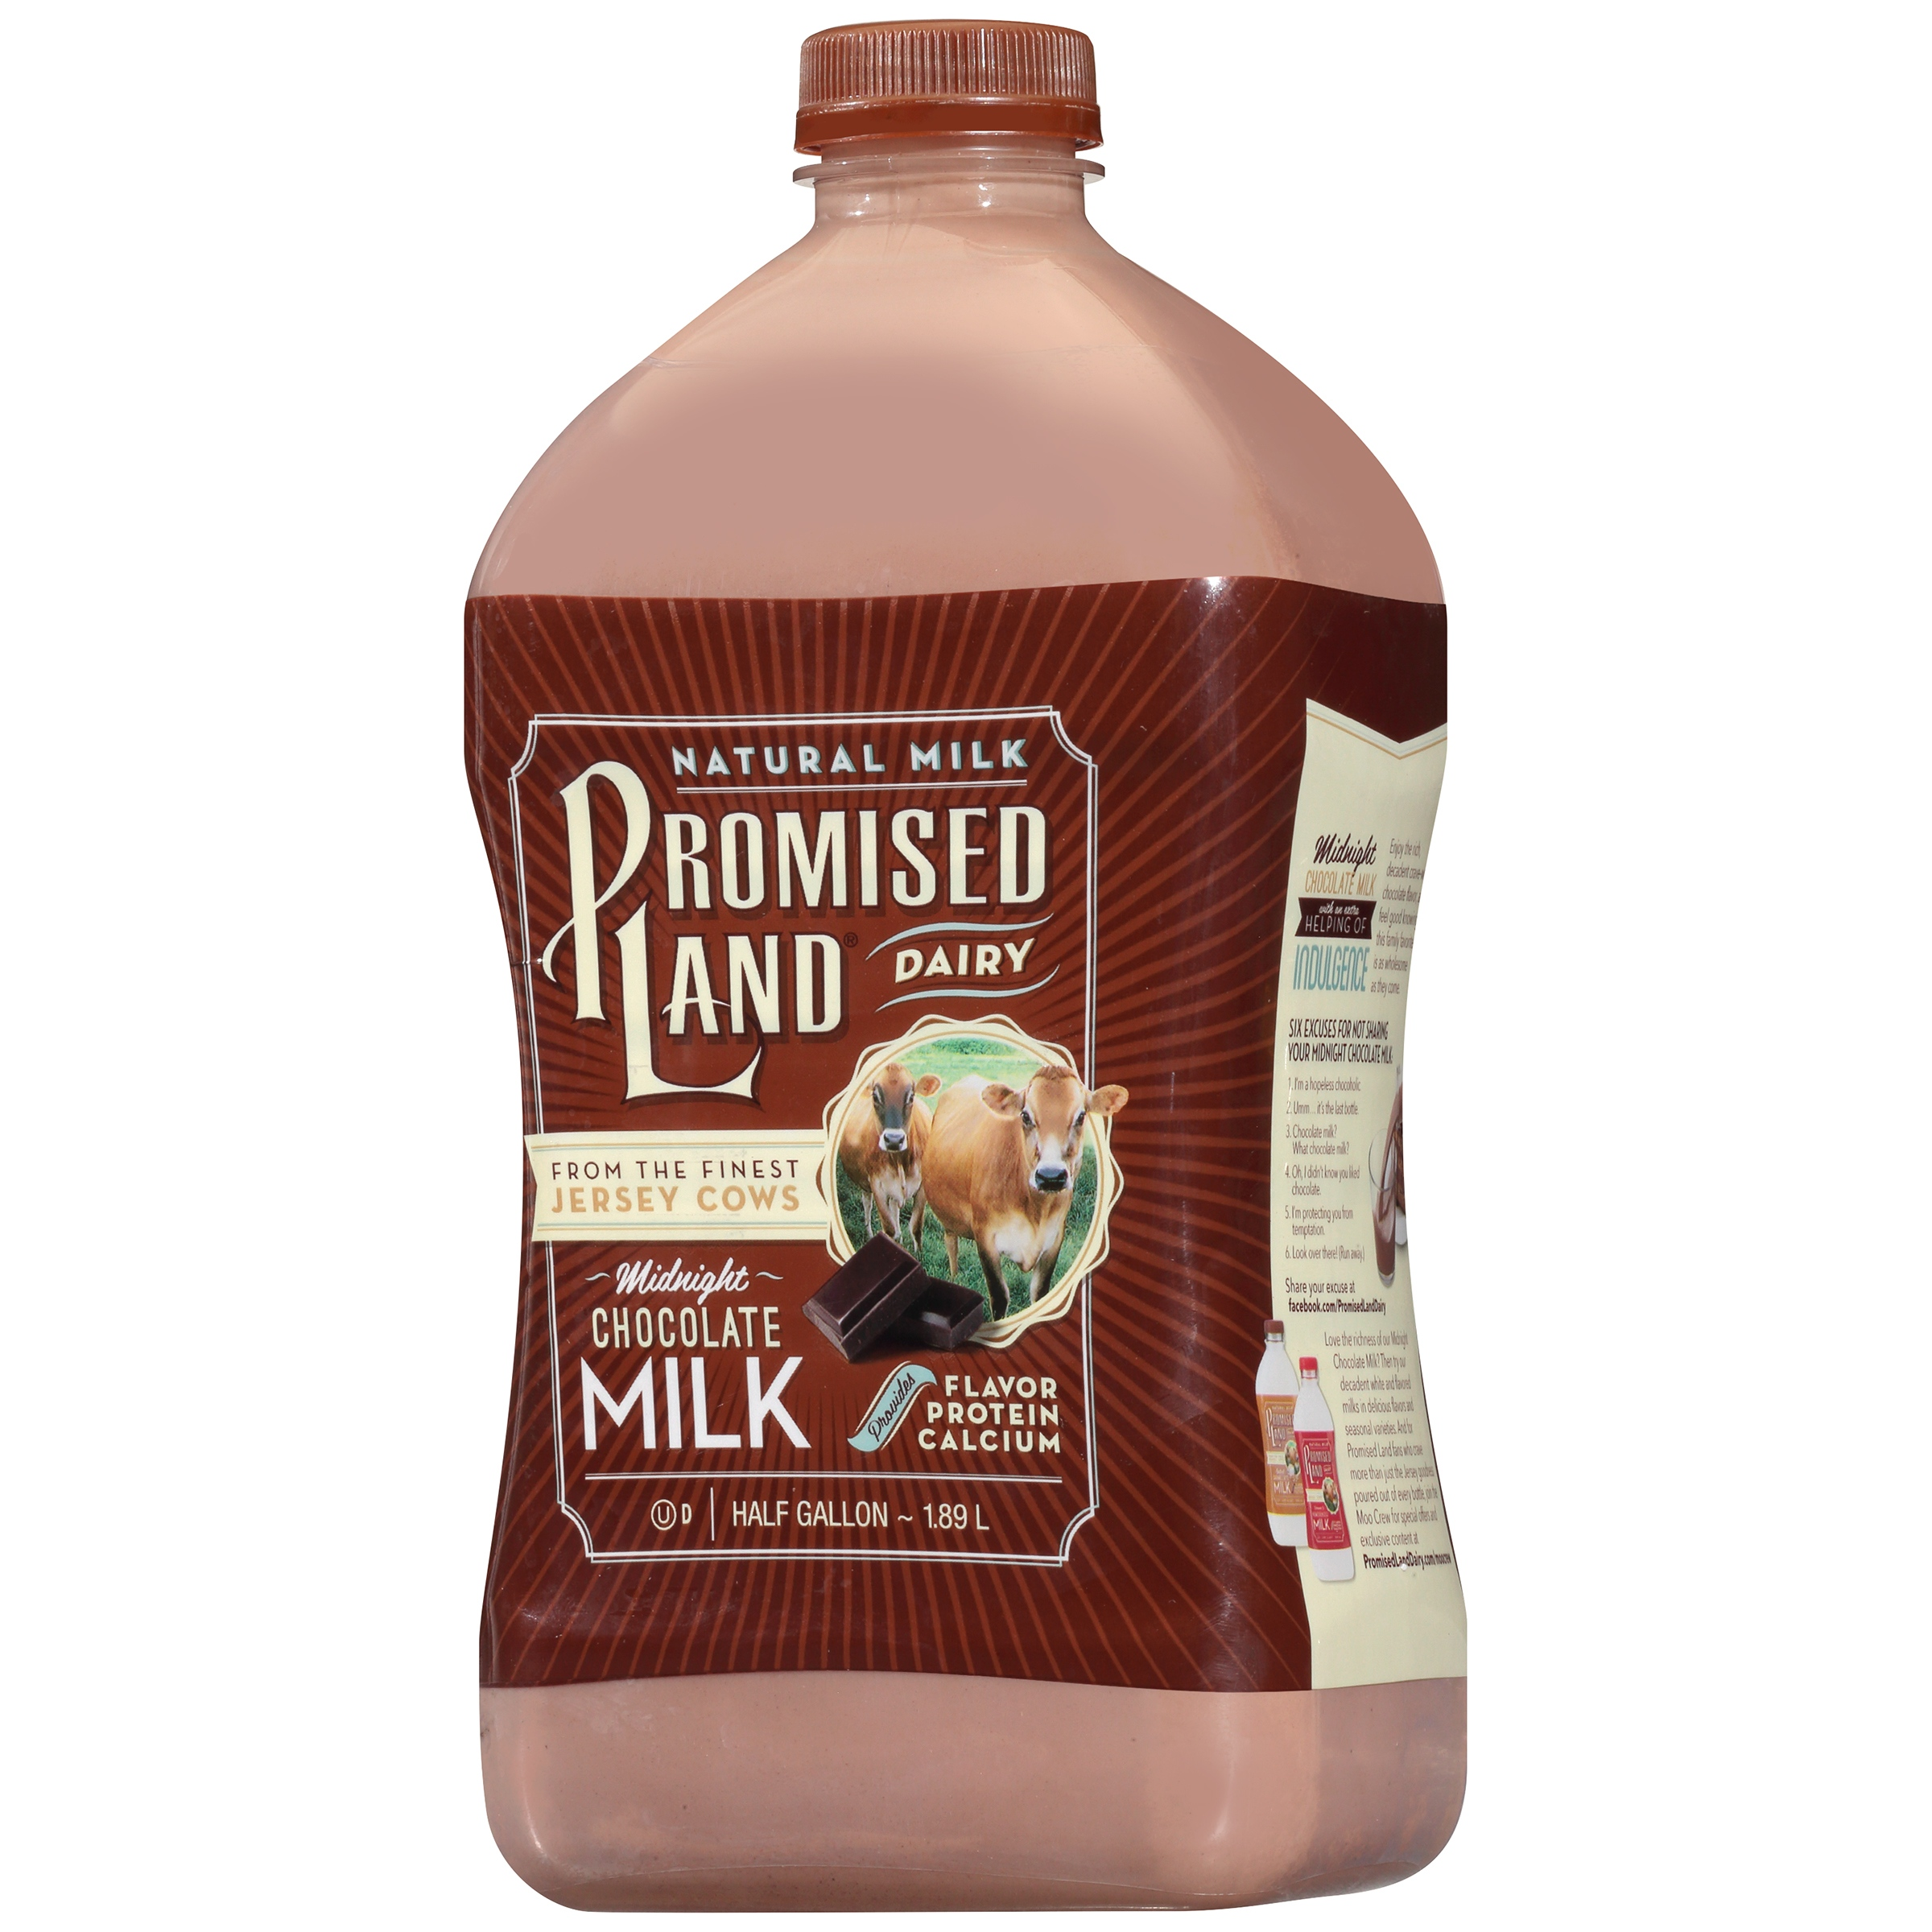 Promised Land Chocolate Milk - Pumpkin Chocolate Chip Cookies